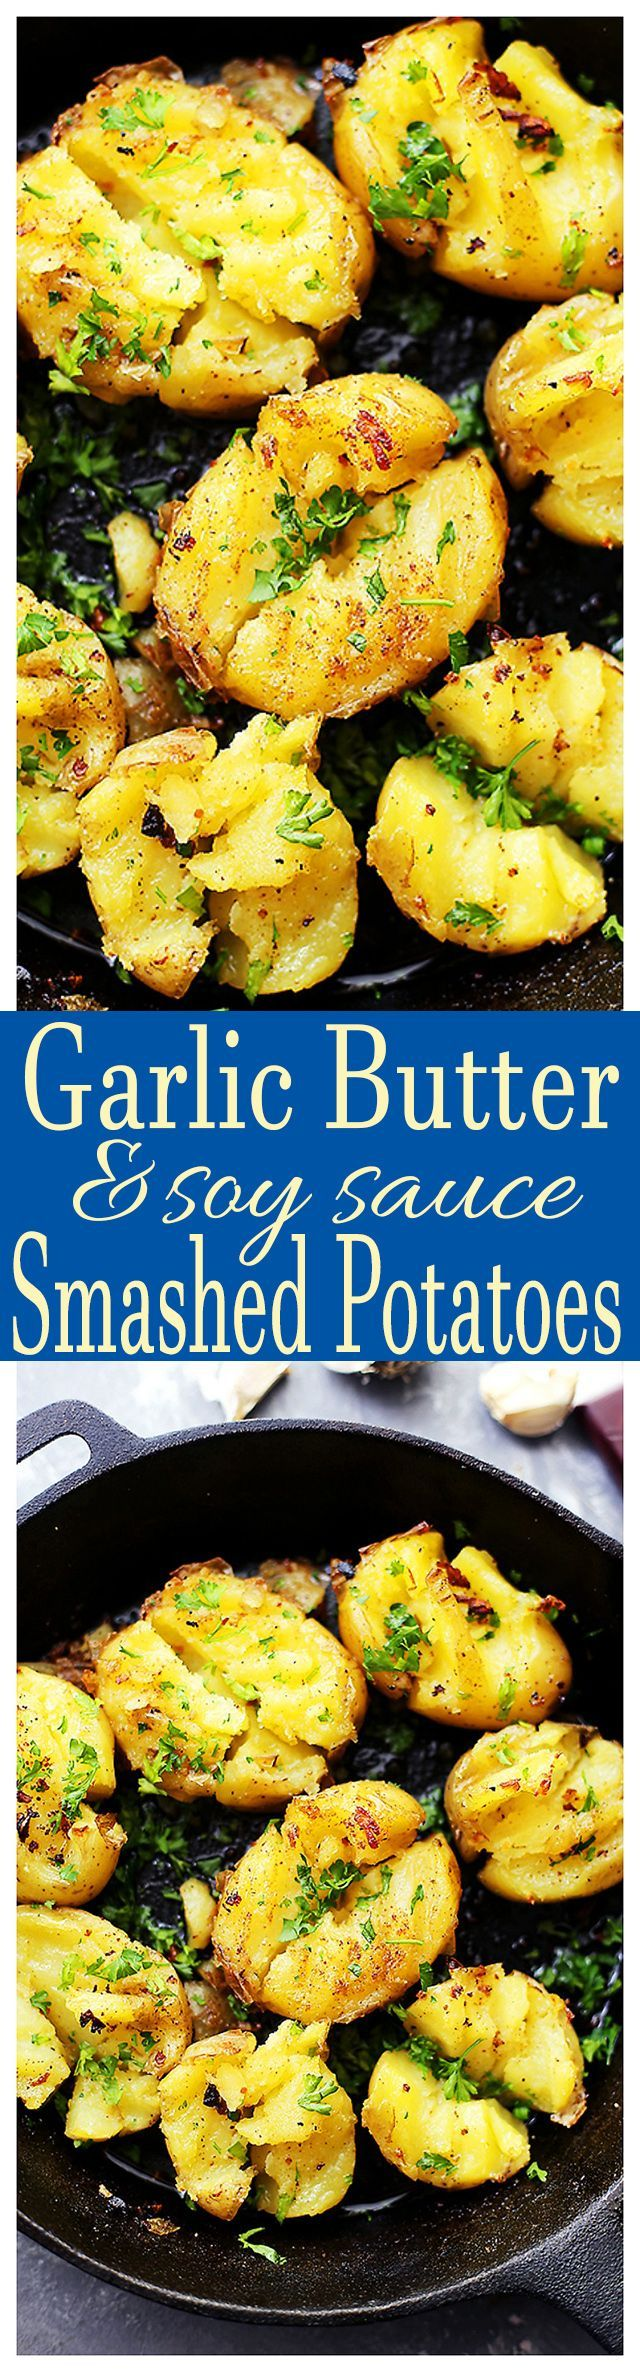 Garlic Butter and Soy Sauce Smashed Potatoes - Flavored with garlic butter and soy sauce, these crazy delicious smashed potatoes are the best side of potatoes you'll ever have! I promise!